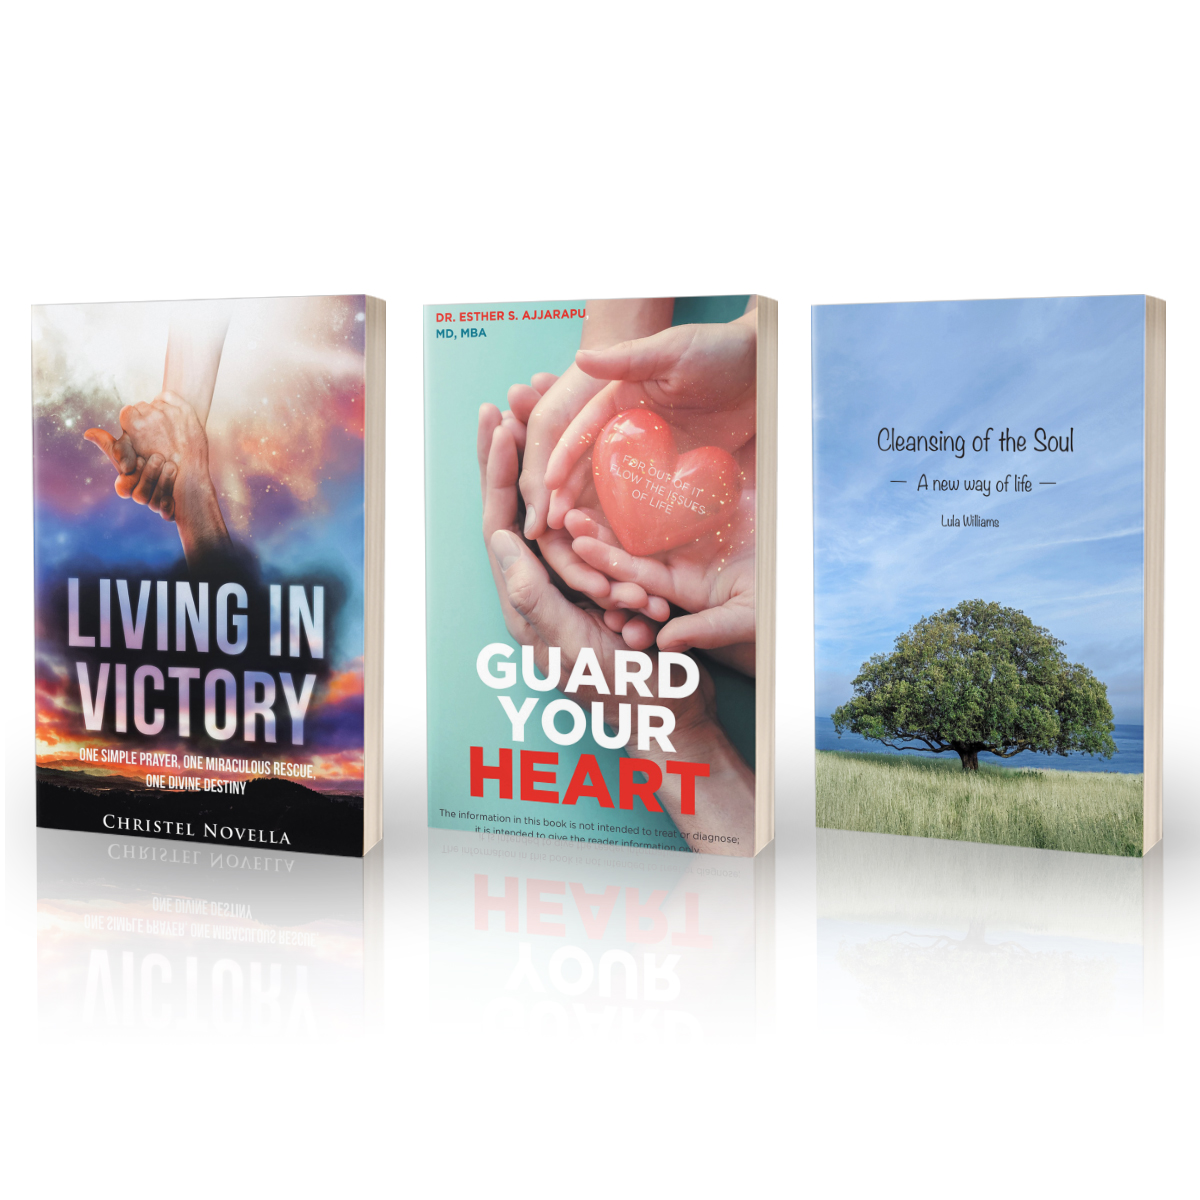 NEW BOOKS THIS WEEK!!  Lula Williams: https://t.co/VJBgREDKFj  Esther S Ajjarapu: https://t.co/L1UsbnKstl Christel Novella: https://t.co/iFKAiaVvk3  ---Have you ever dreamed of being an author? @TBN & @trilogybooks want to help! go to https://t.co/9T1CMaBcLV to find out how! https://t.co/nR0uZ09dSY